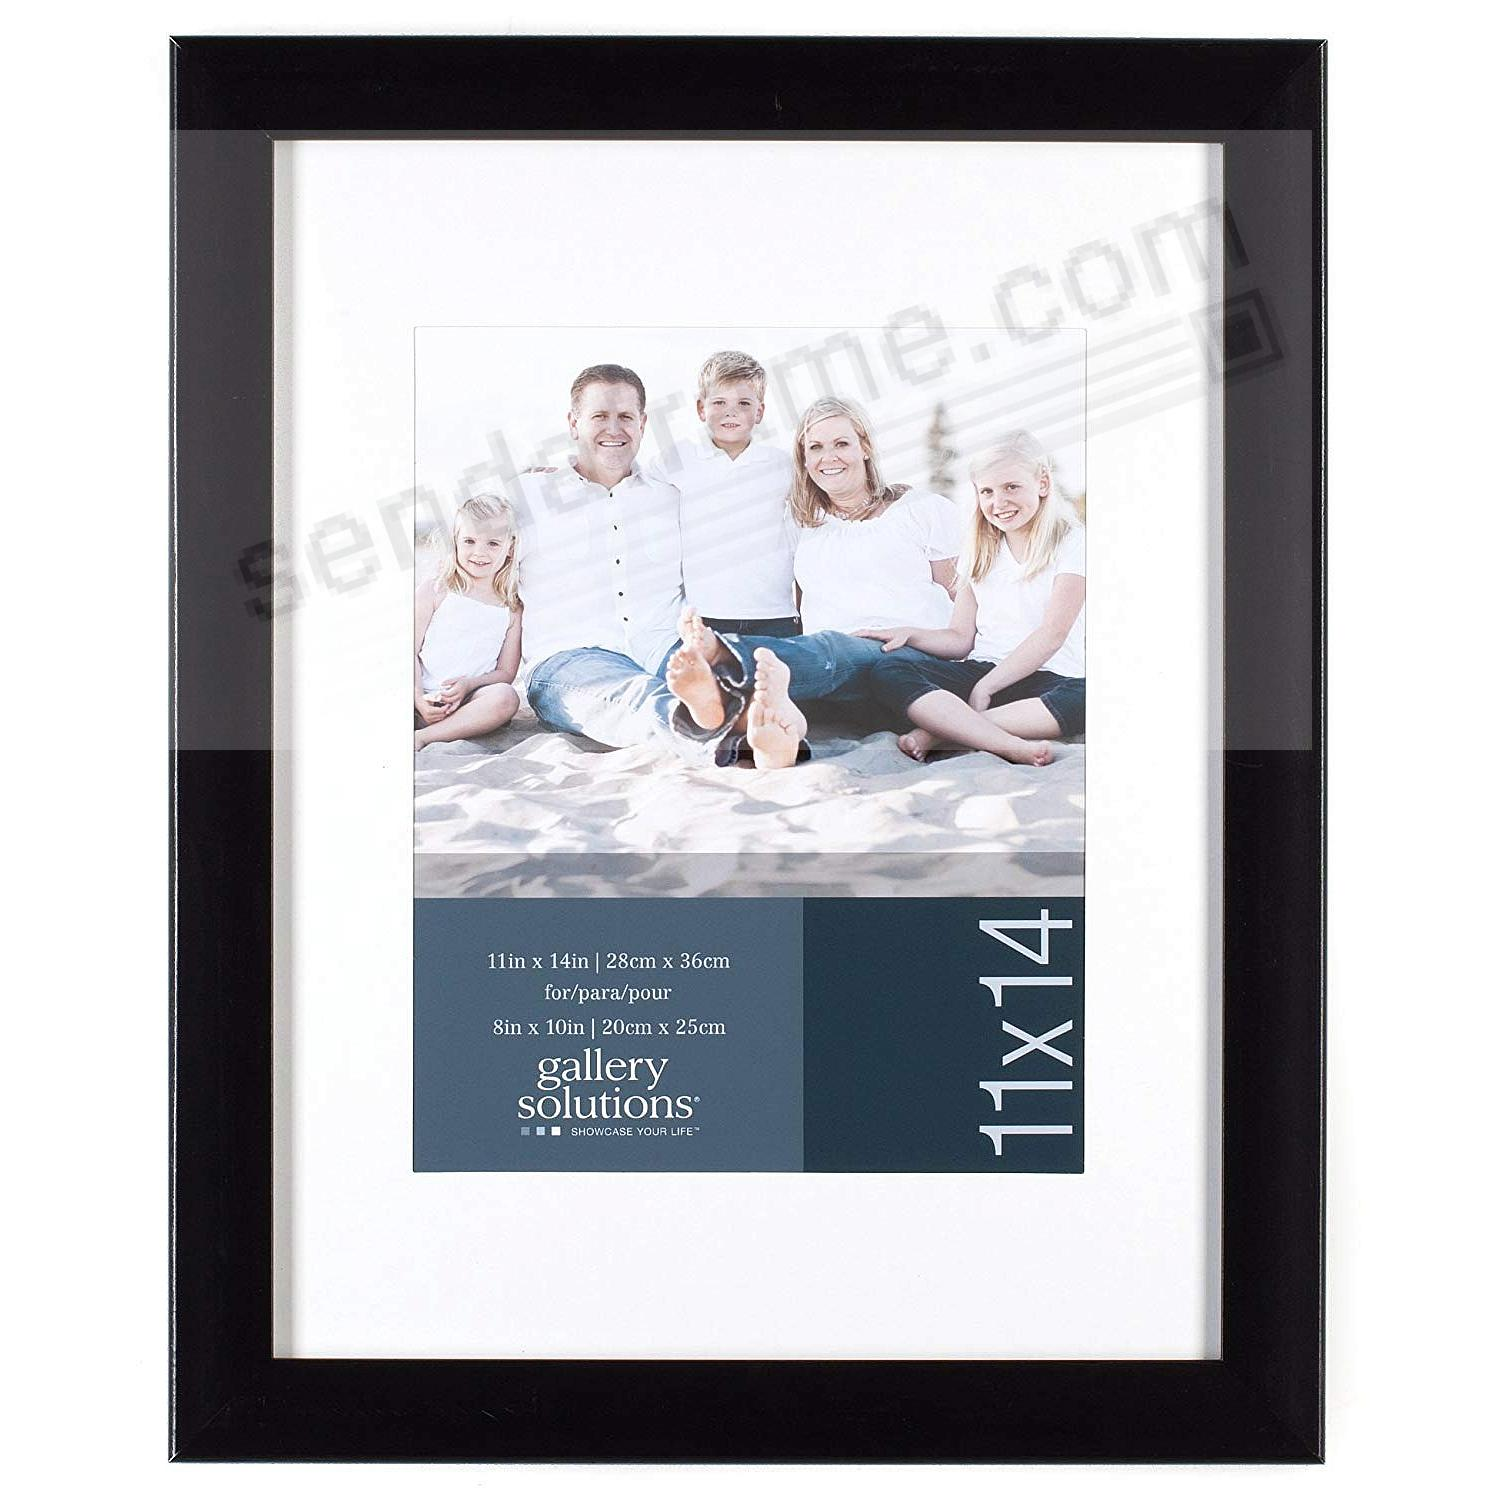 Glossy Black 11x14/8x10 matted frame by Gallery Solutions™